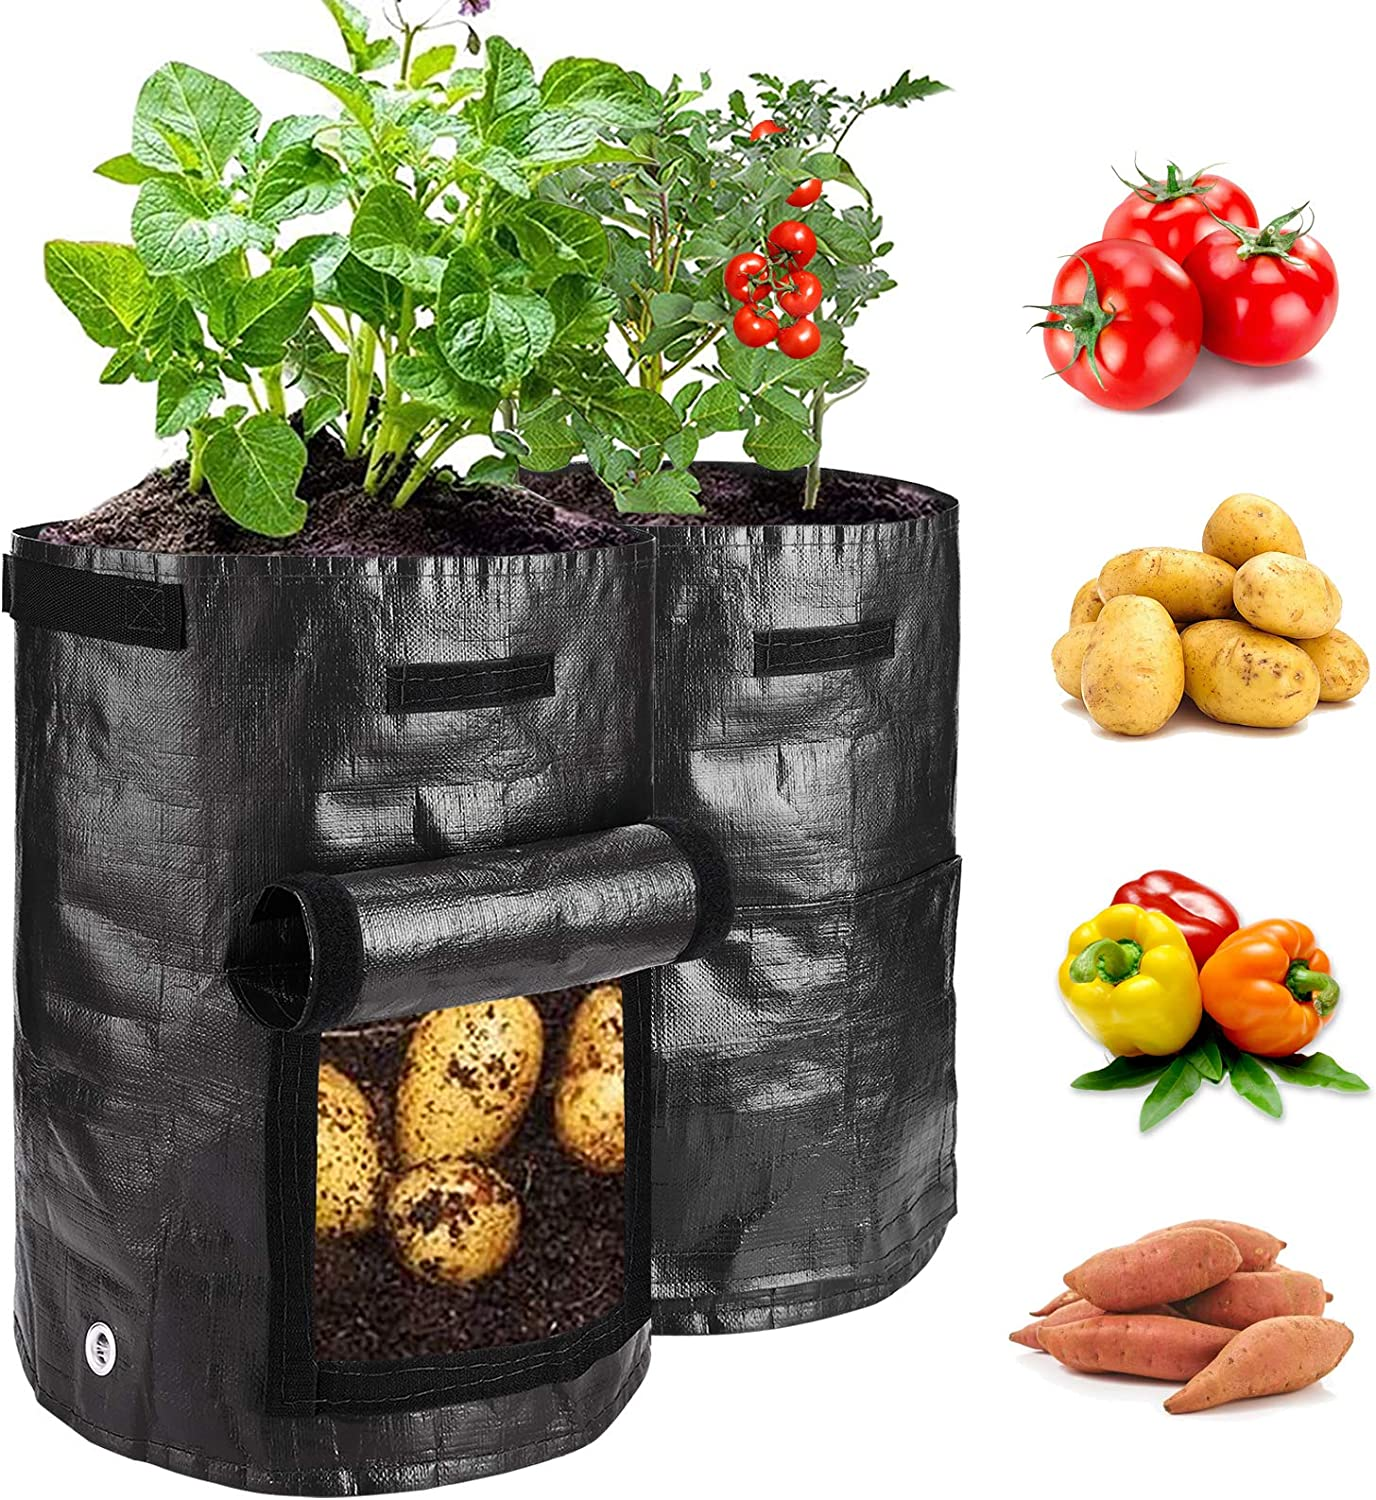 2 Pack 7 Gallon Garden Potato Grow Bags with Flap and Handles Aeration Fabric Planter Pots , Heavy Duty Potato Planters Garden Planting Bags for Onion, Fruits, Tomato, Carrot (Black)